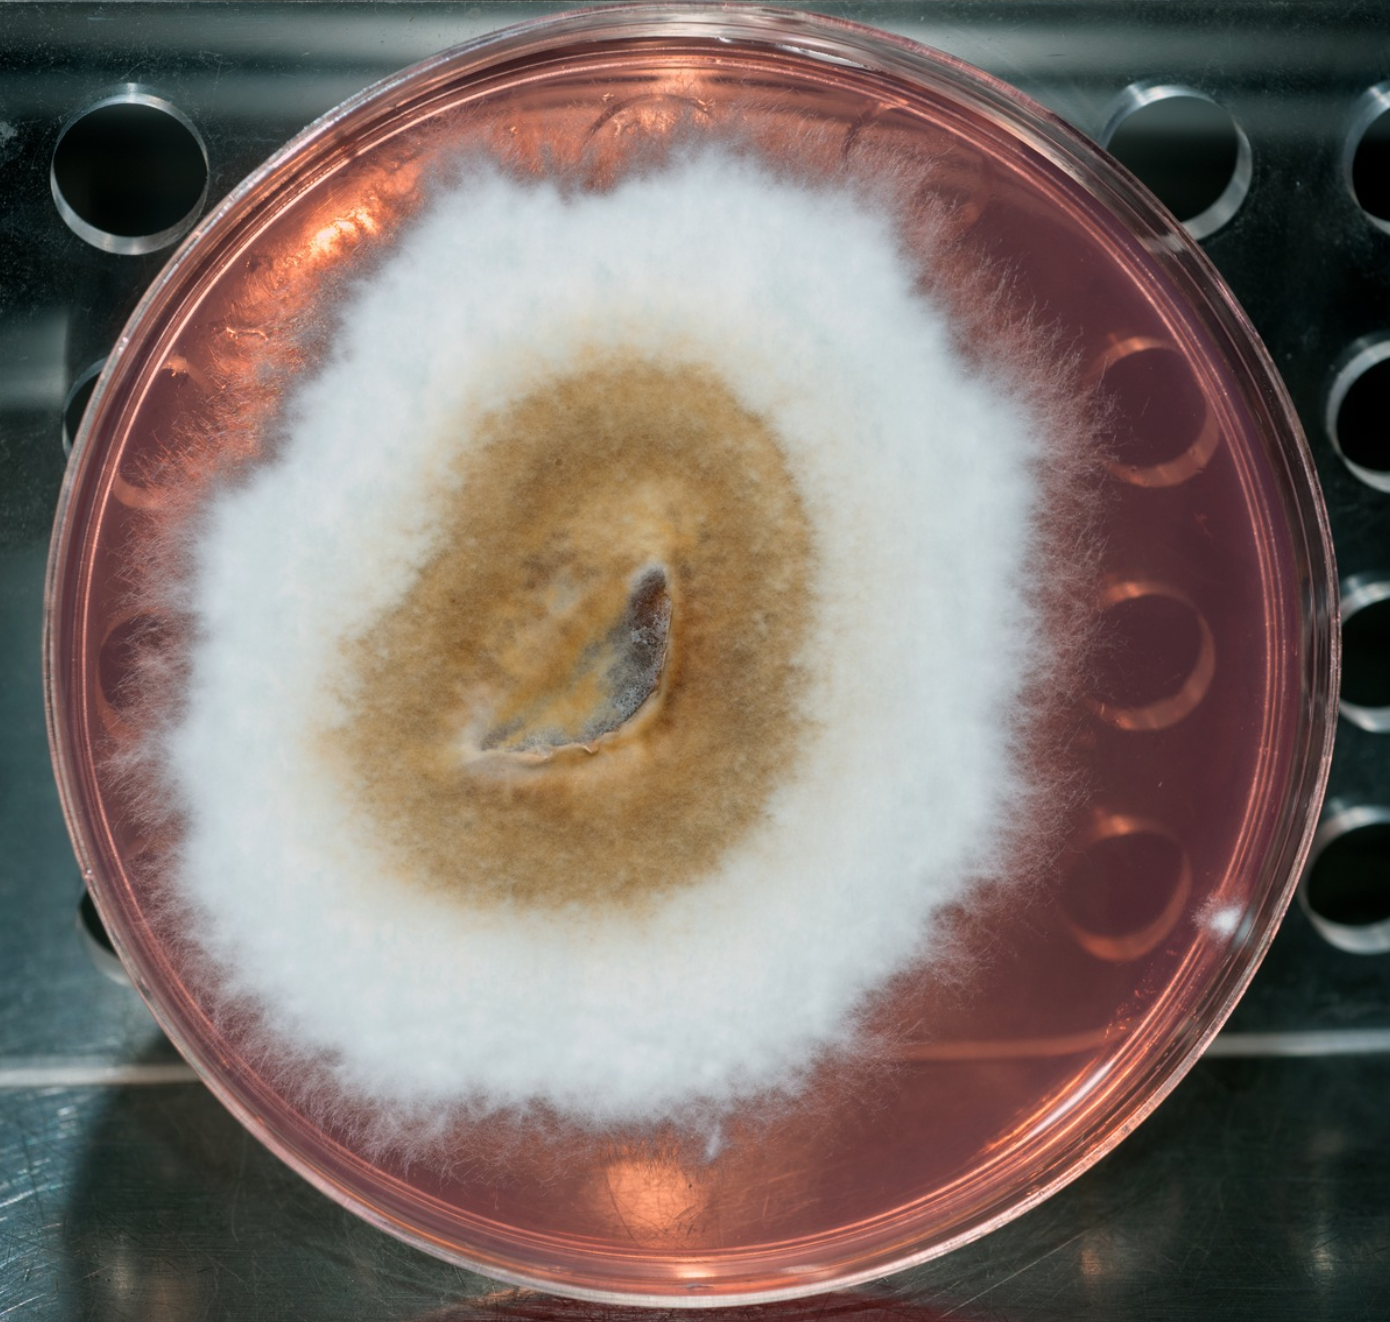 Phellinus igniarius (a thick-walled spore producer)growing Petri dish with nutrient agar. By  Alan Rockefeller .